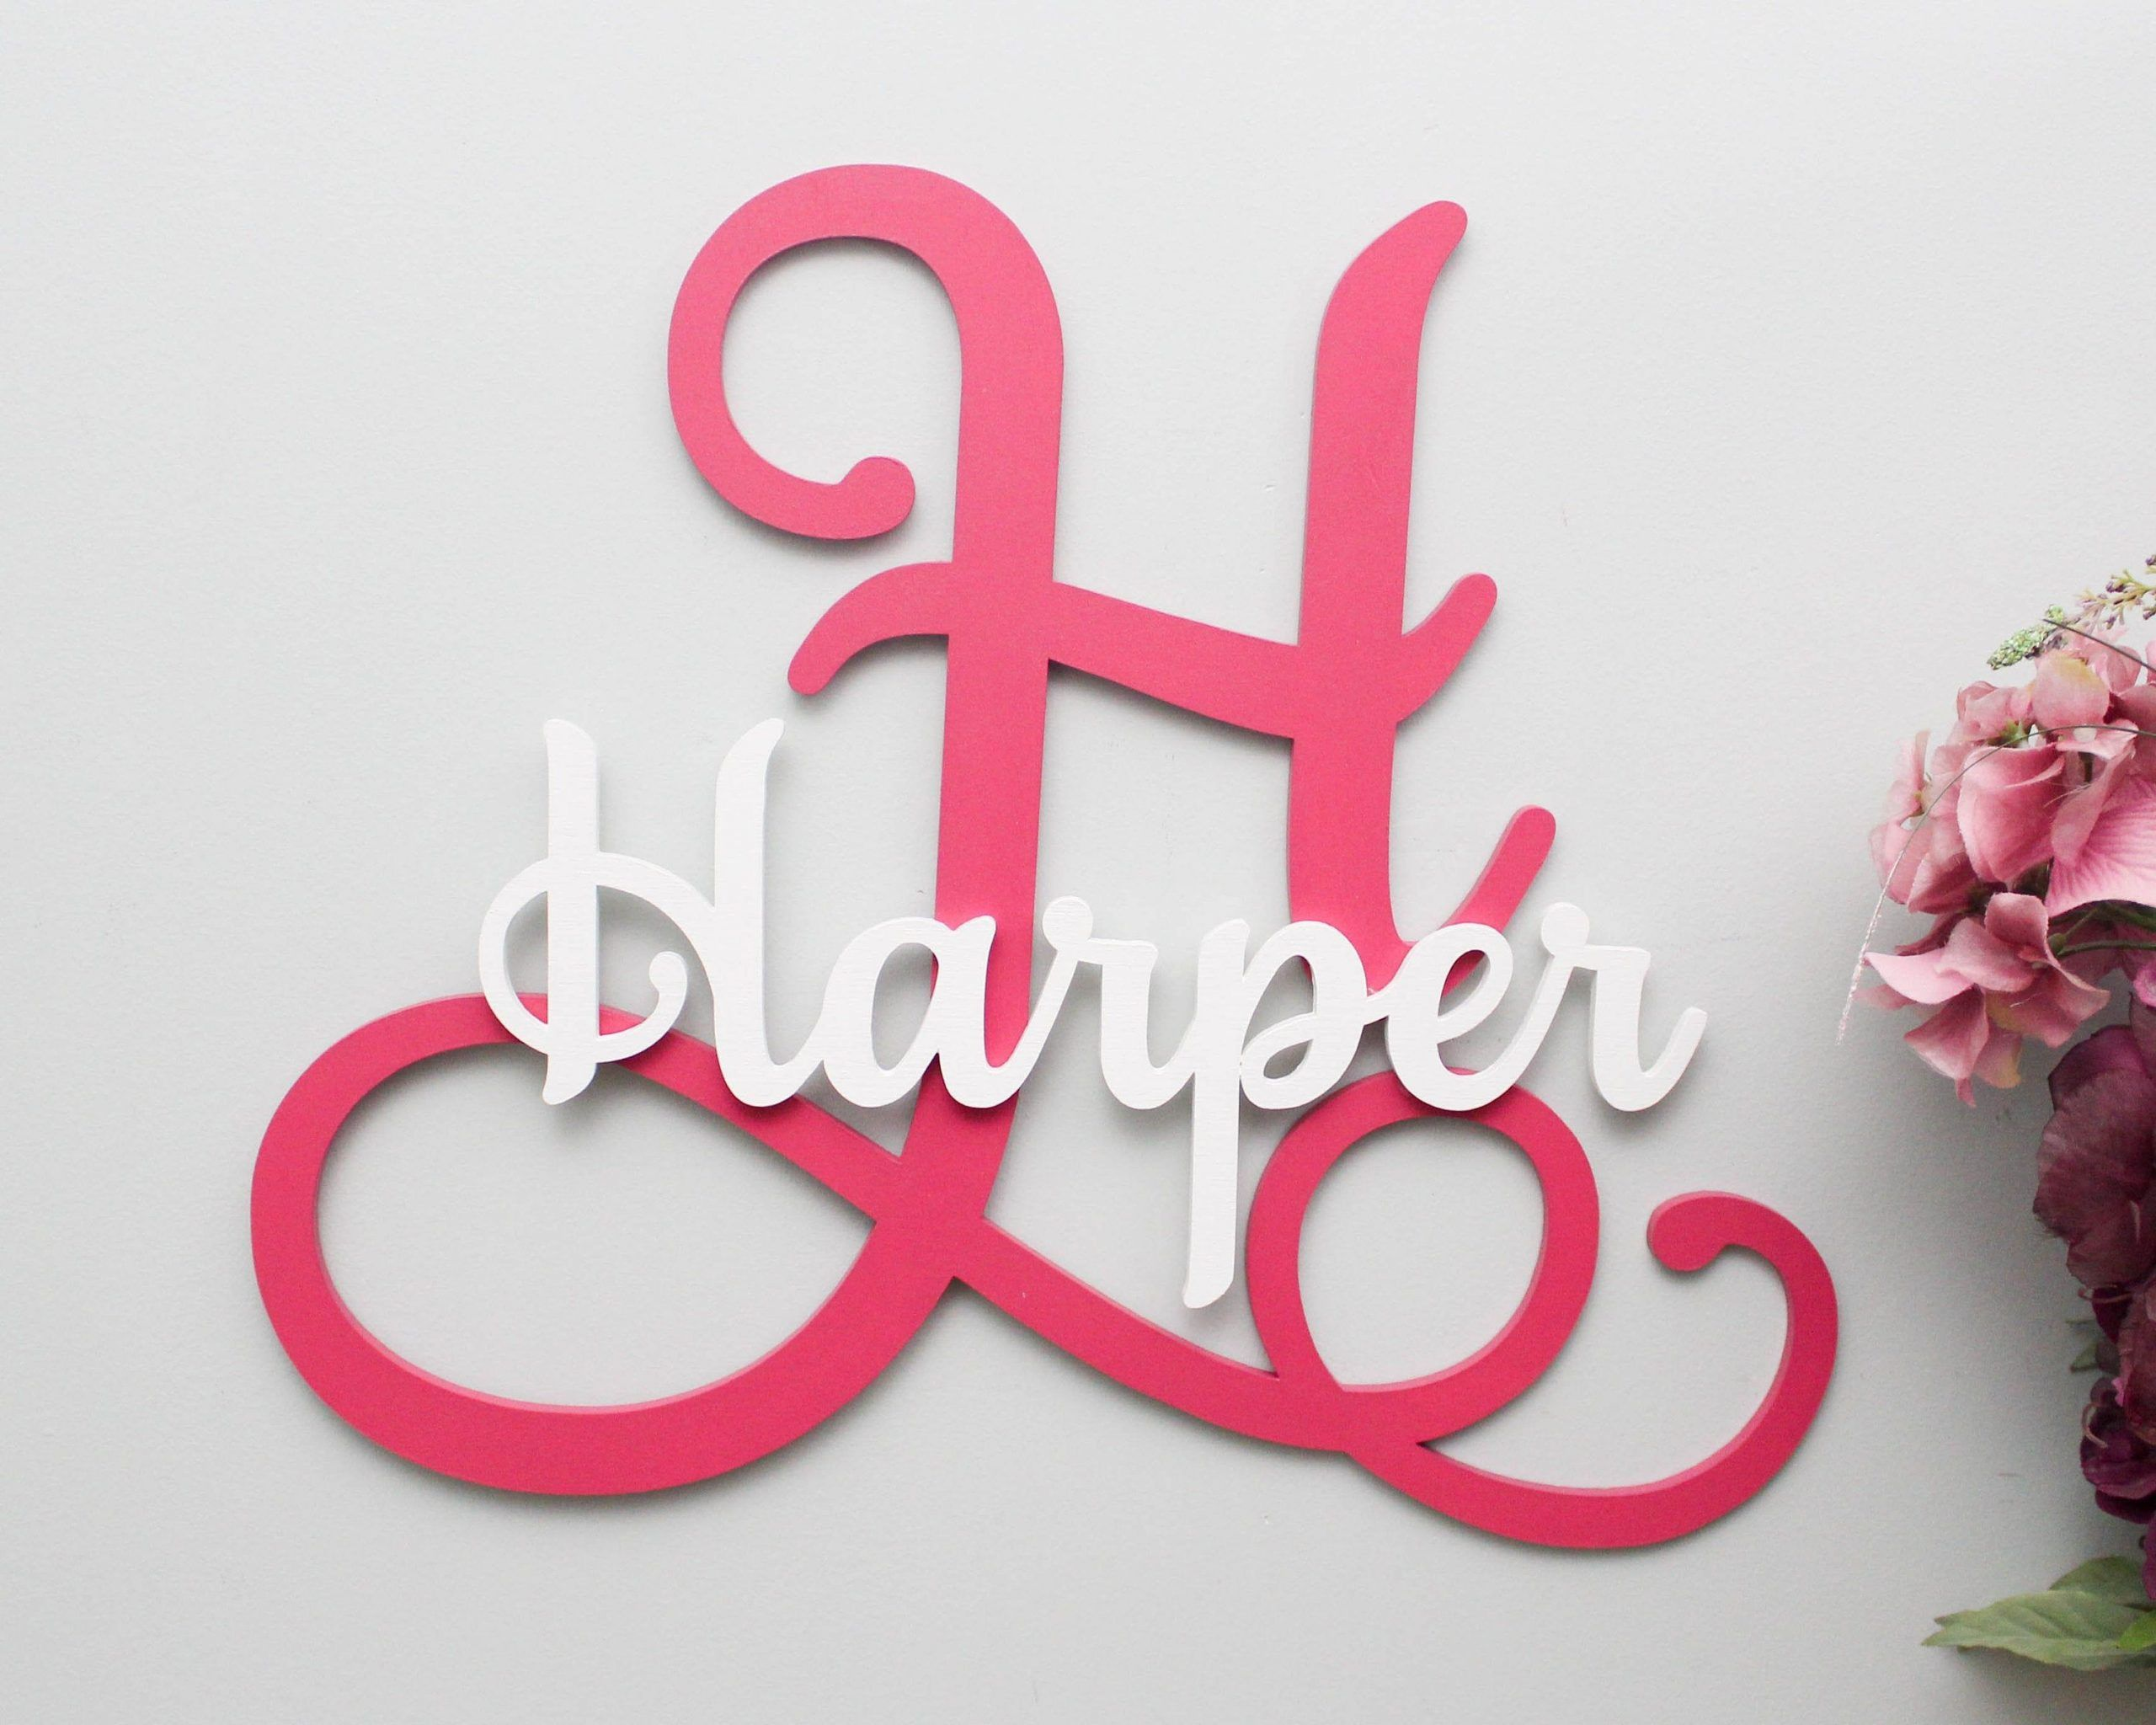 Large Wooden Letters Custom Wood Name Sign Personalized Letters For Nursery Decor Family Name Wood Letters Gallery Wall Decor In 2020 Large Wooden Letters Wood Name Sign Wooden Letters